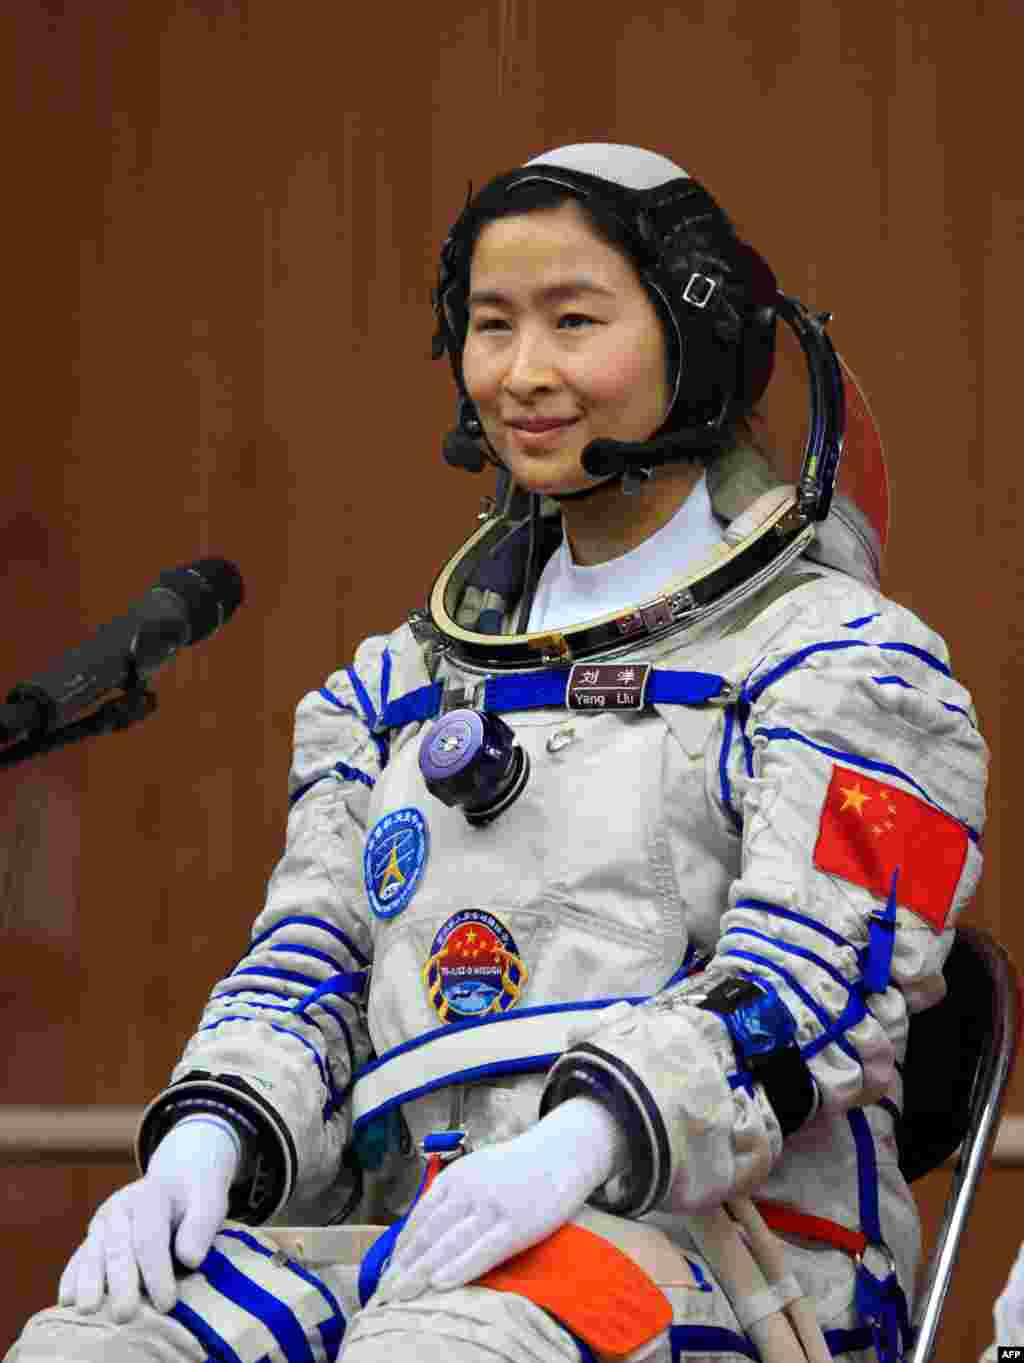 Liu Yang in her spacesuit posing for an official photo at the Jiuquan space base on June 12.